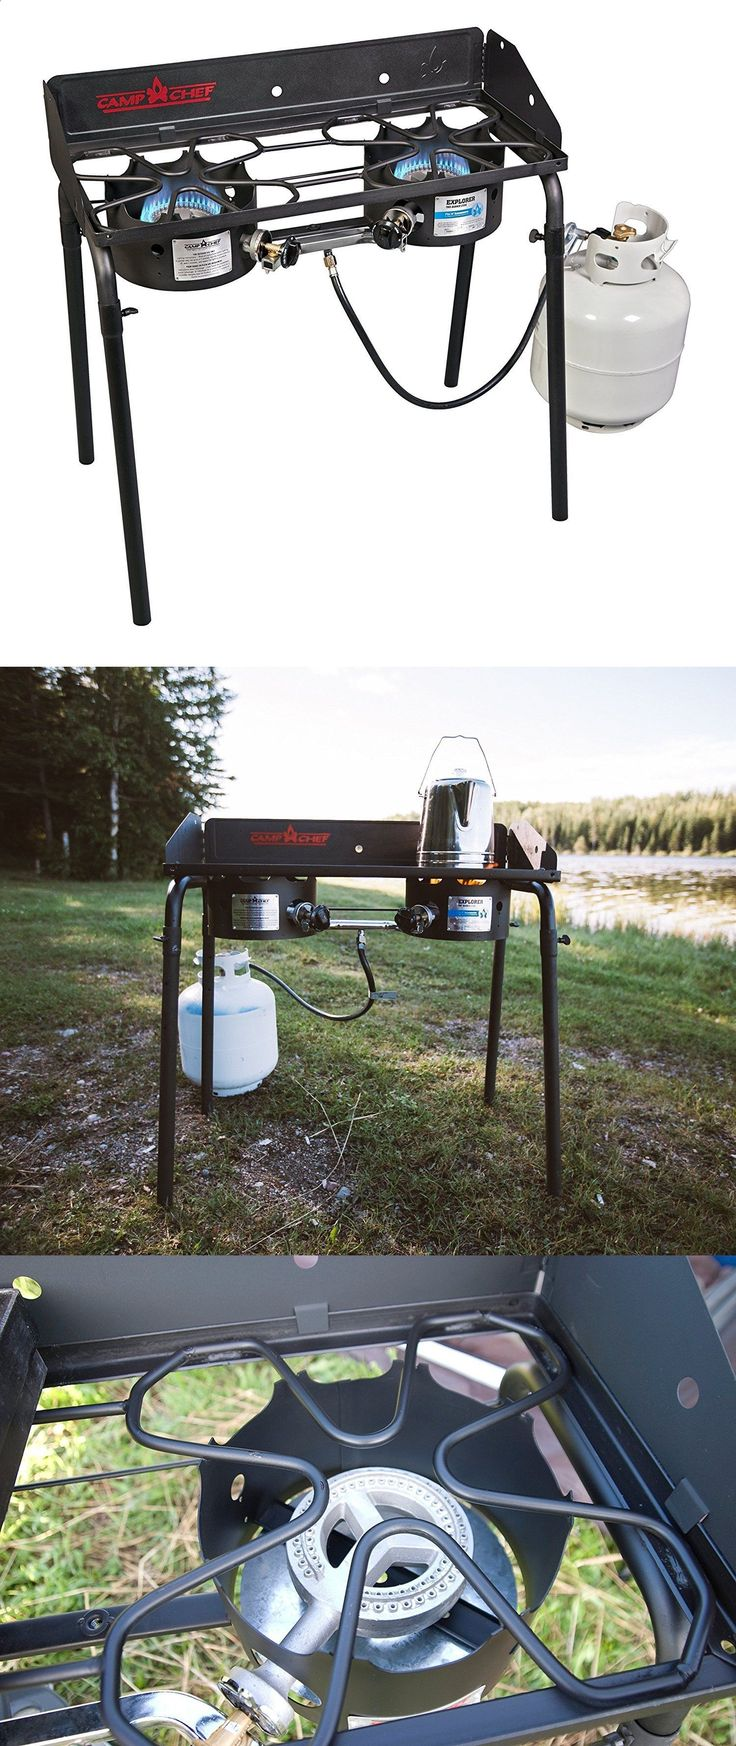 Camping Stoves 181386: Two Burner Propane Stove Portable Best Gas Range Propane Outdoor Camp Cooker -> BUY IT NOW ONLY: $154.99 on eBay!